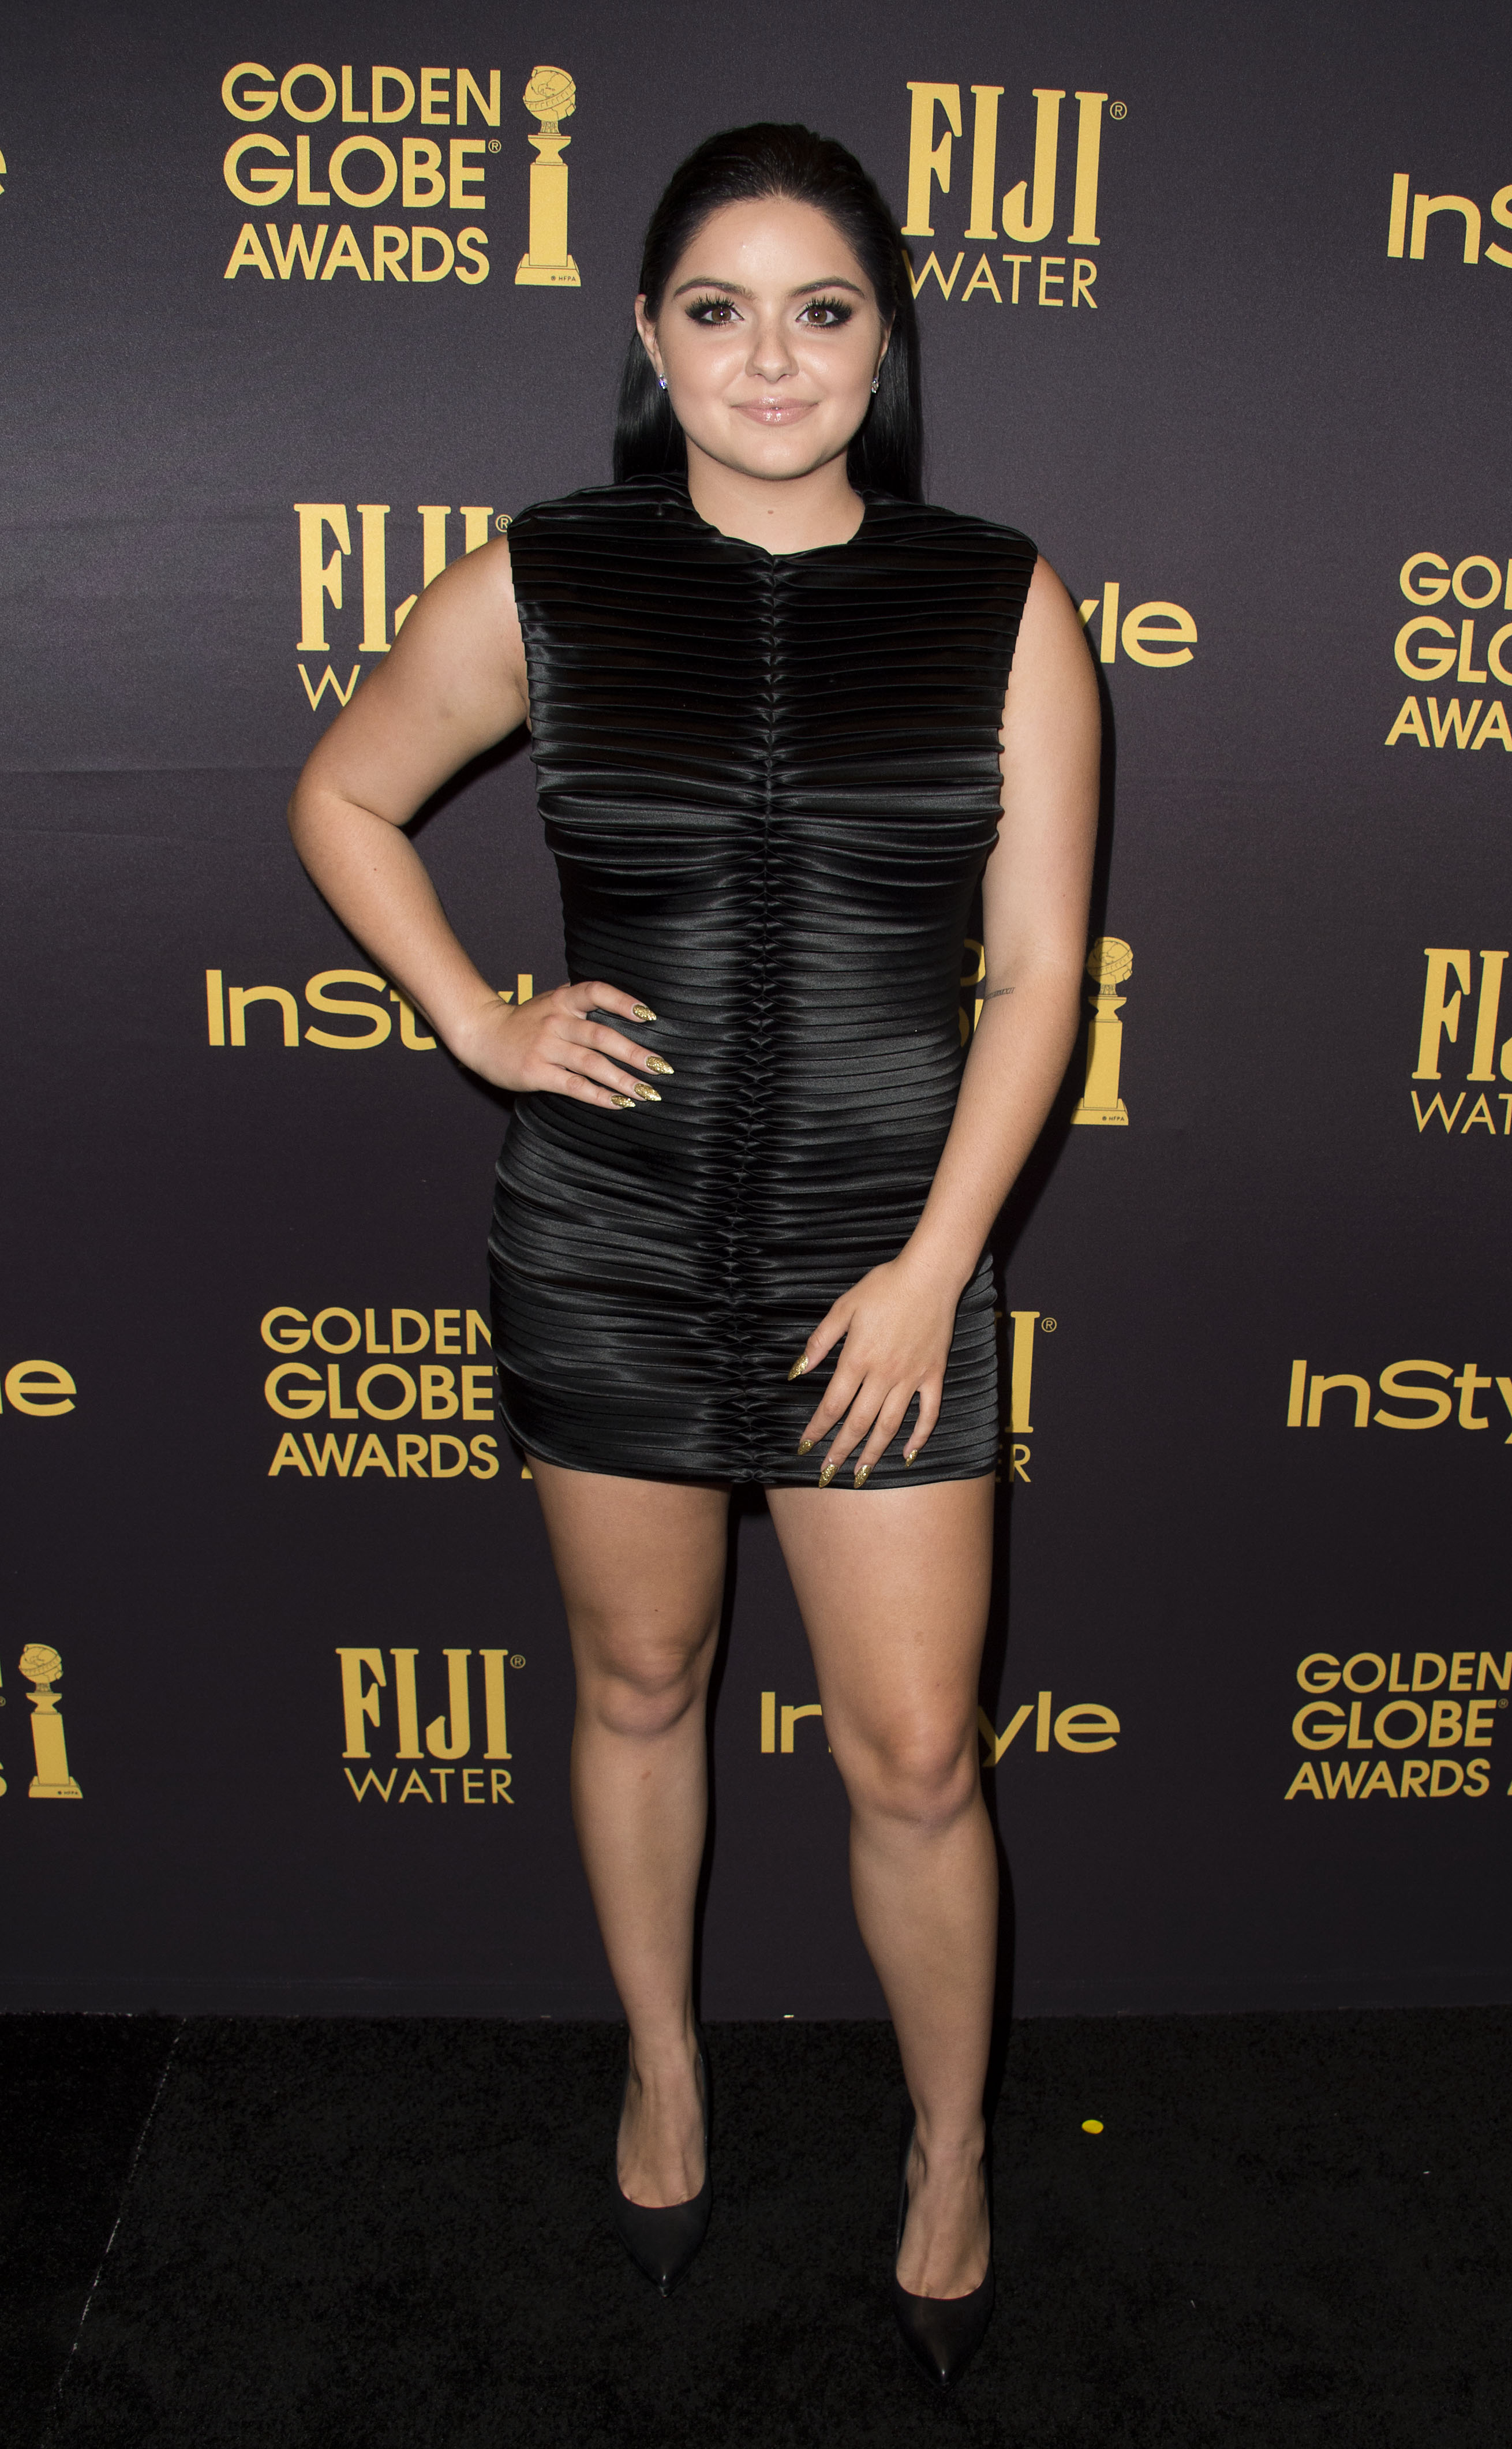 aabc04176c3 Ariel Winter s ruched little black dress is the chicest fashion ...